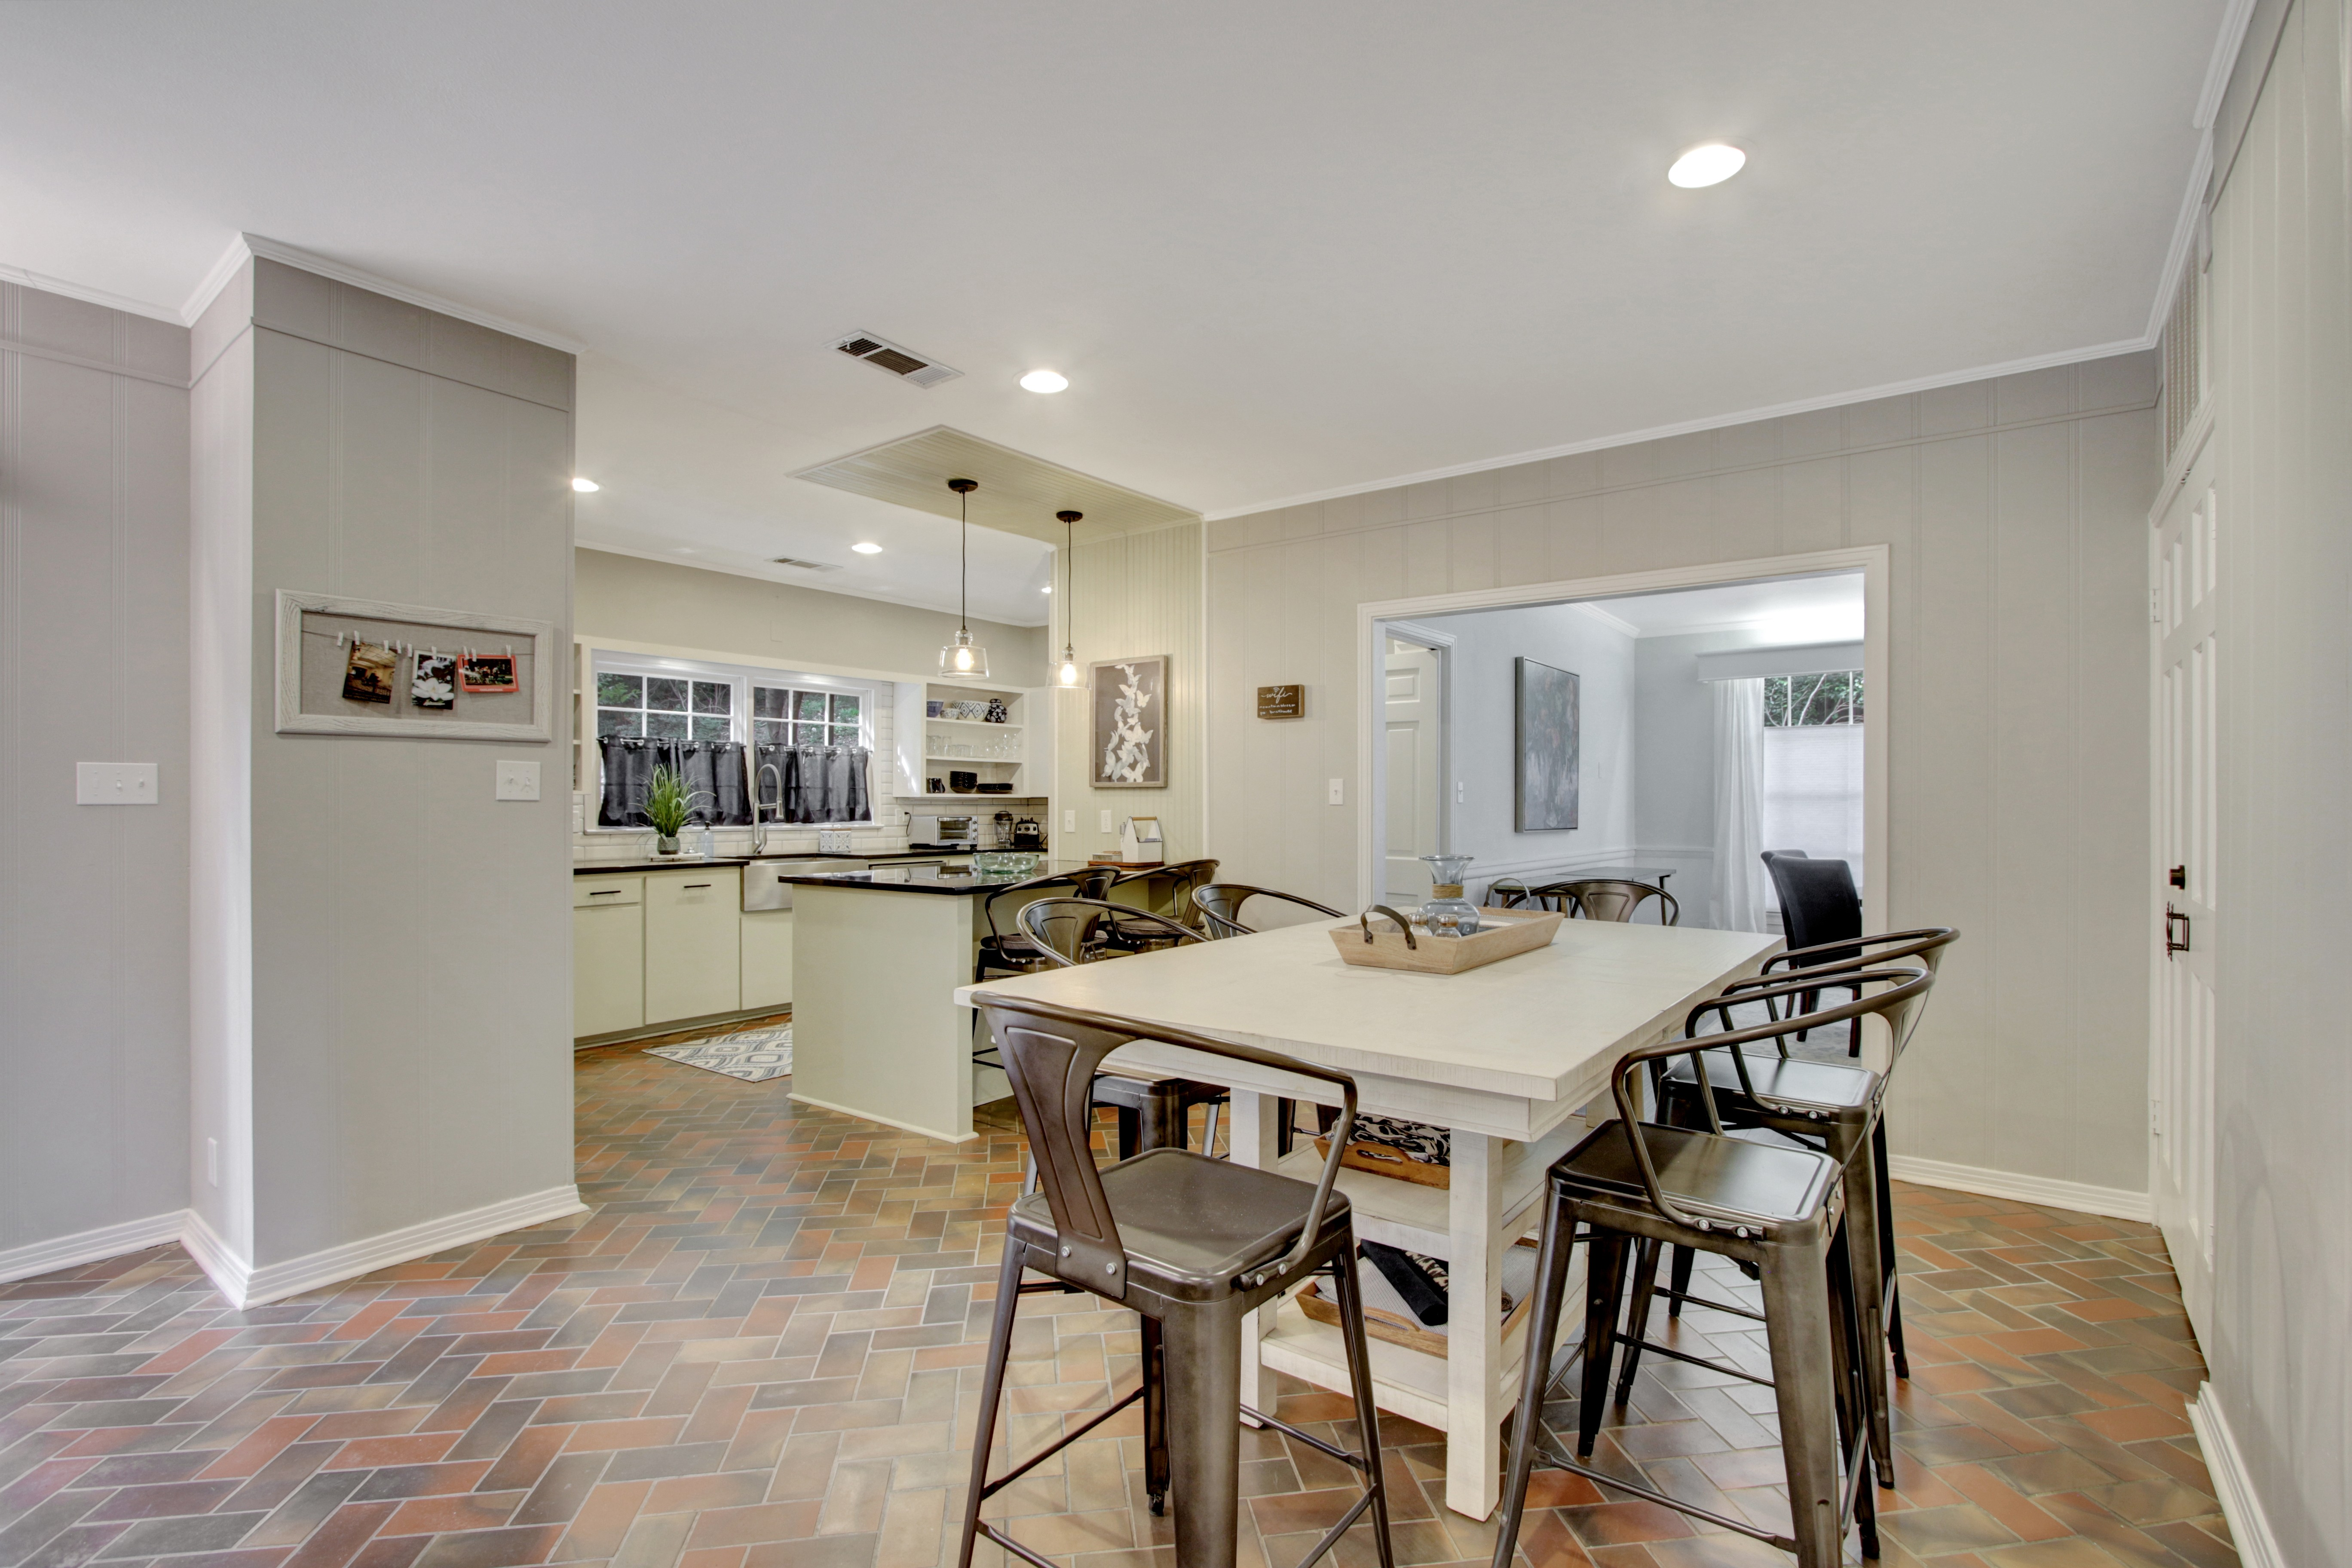 Breakfast room and kitchen